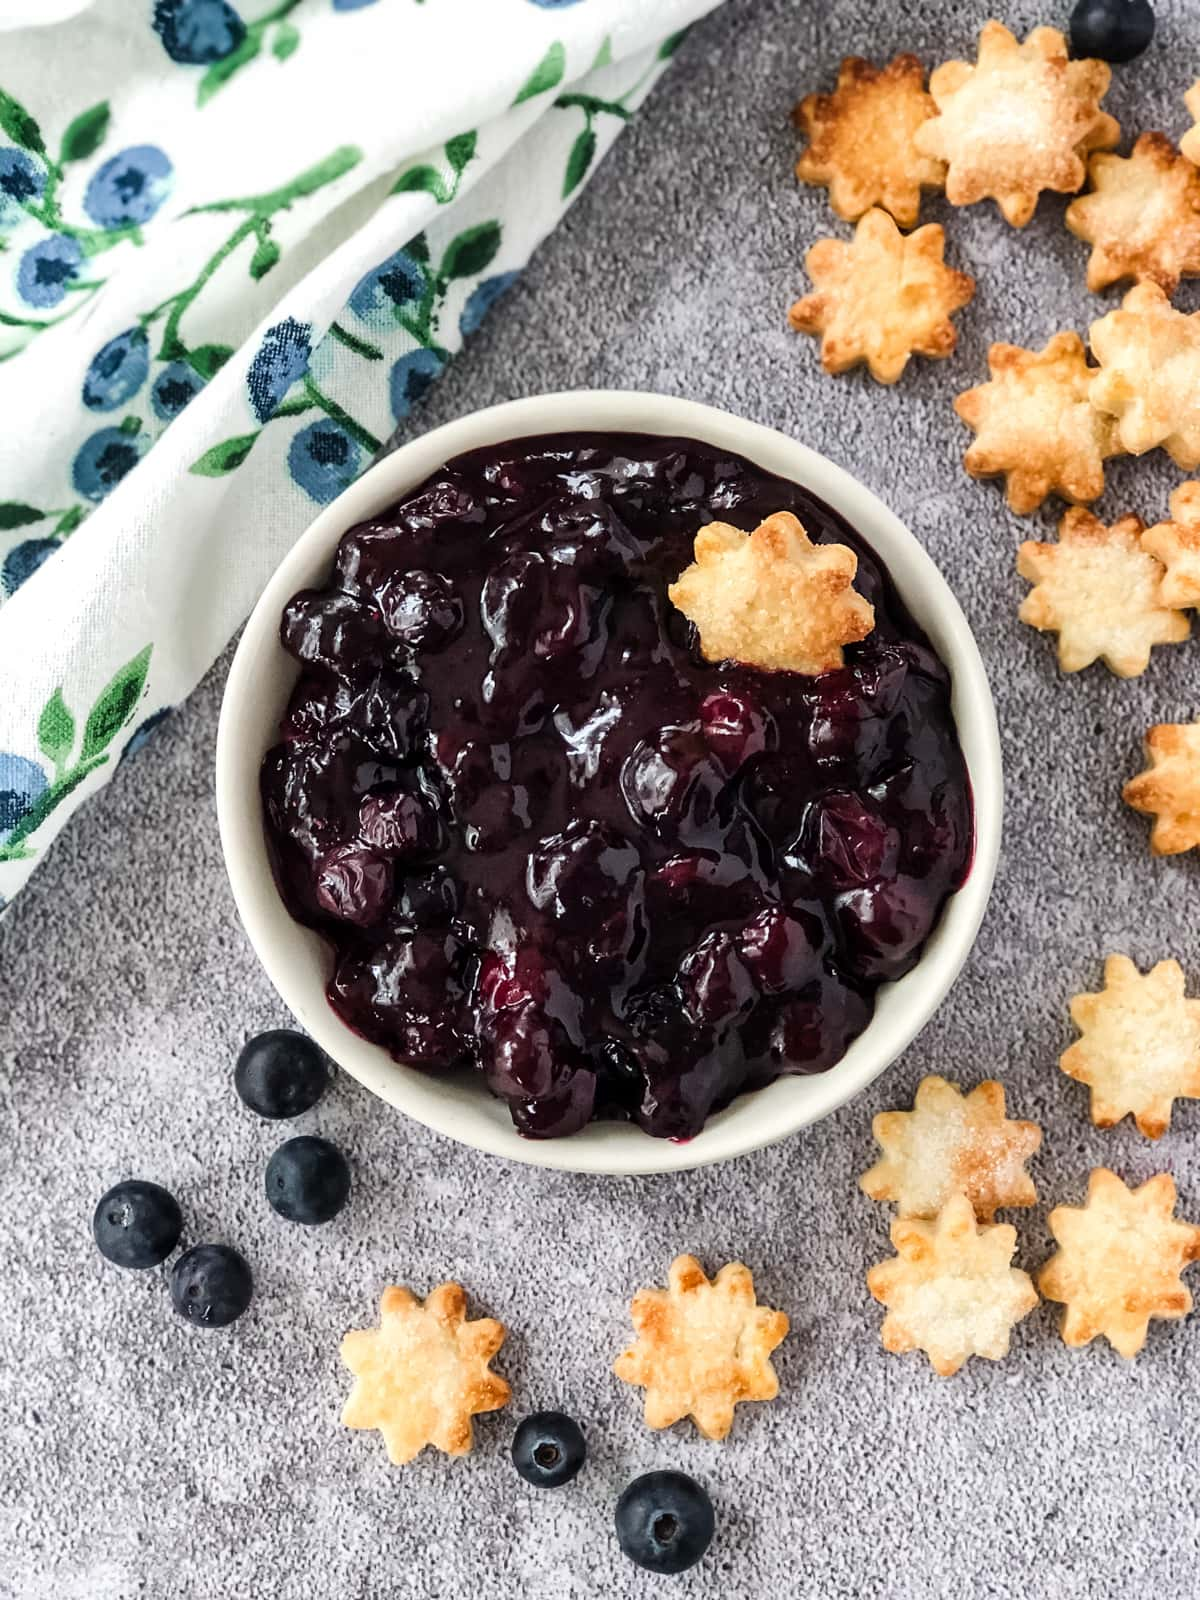 Blueberry Pie Dip with Pie Crust Dippers